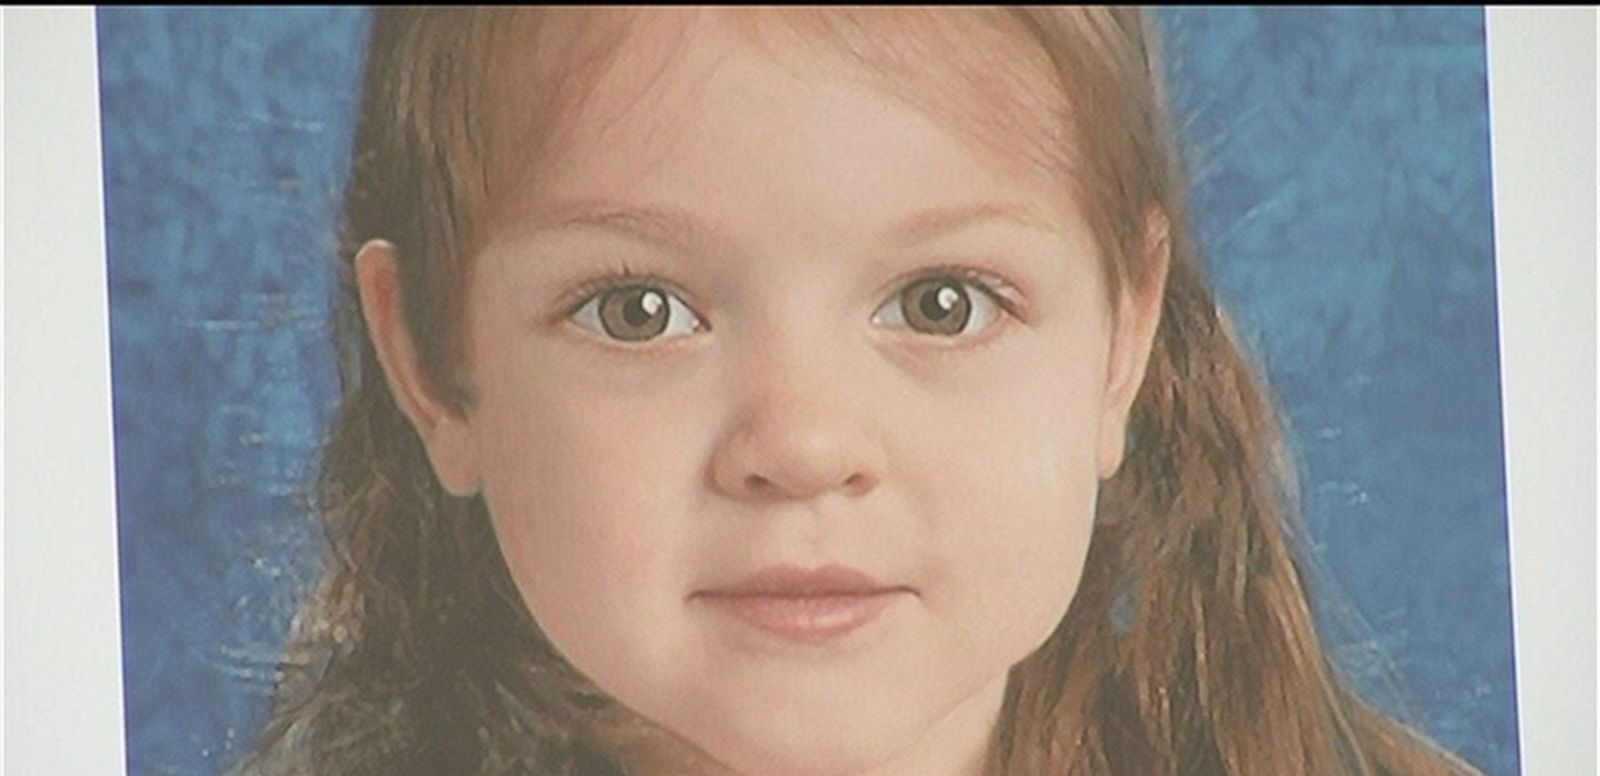 VIDEO: Massachusetts authorities have released new photos in hopes of identifying a young girl who was discovered dead inside a trash bag.